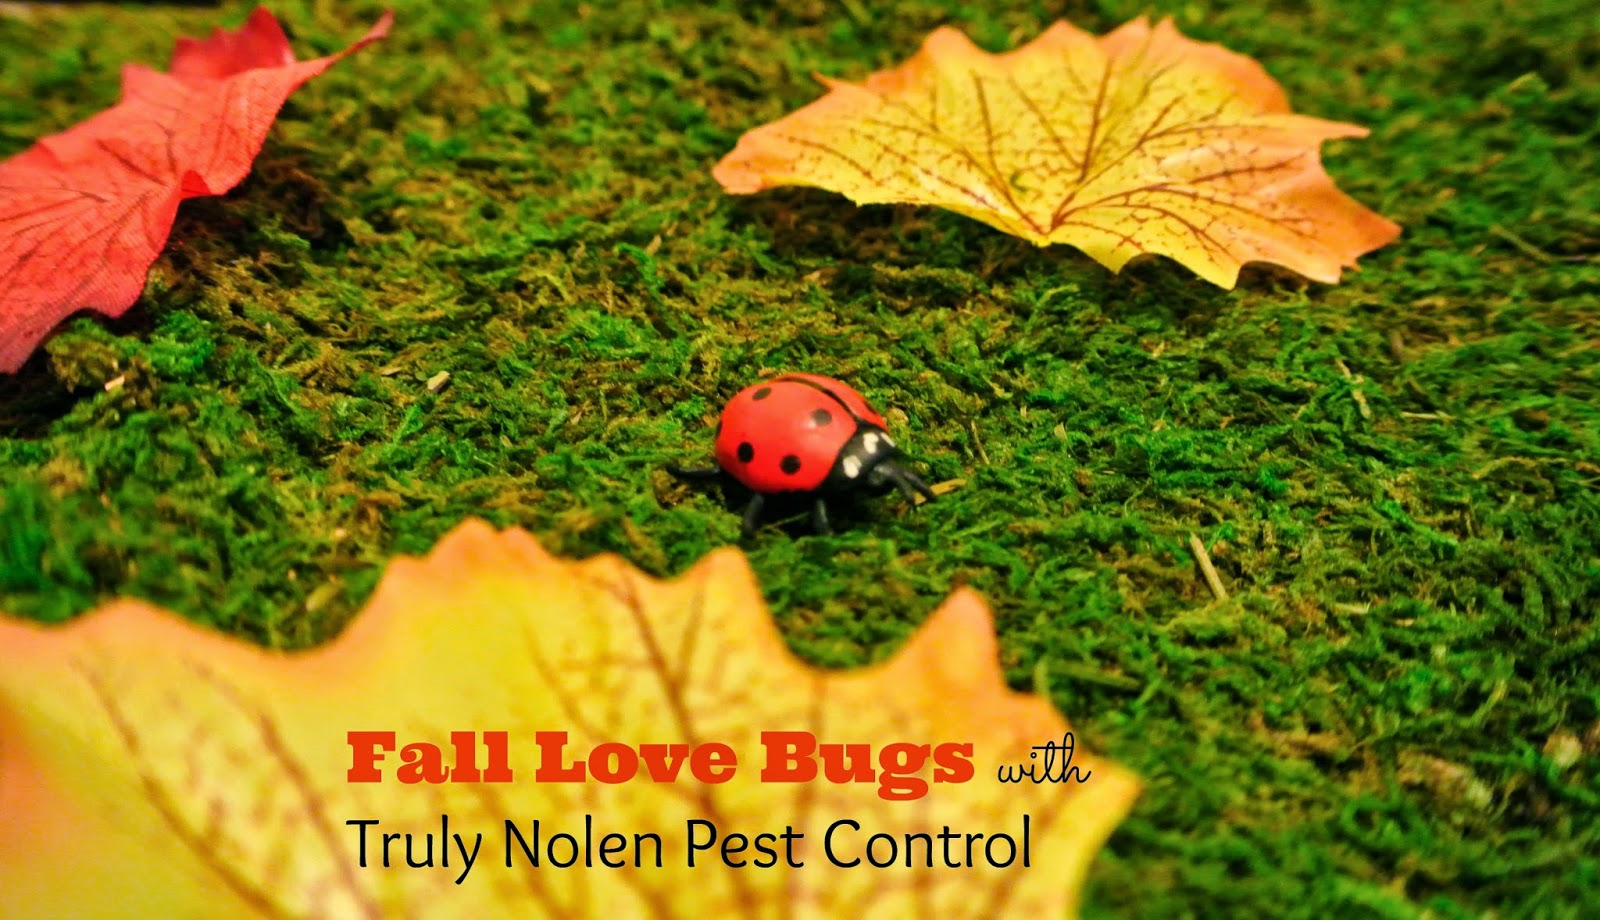 http://b-is4.blogspot.com/2014/09/fall-love-bugs-with-truly-nolen-pest.html